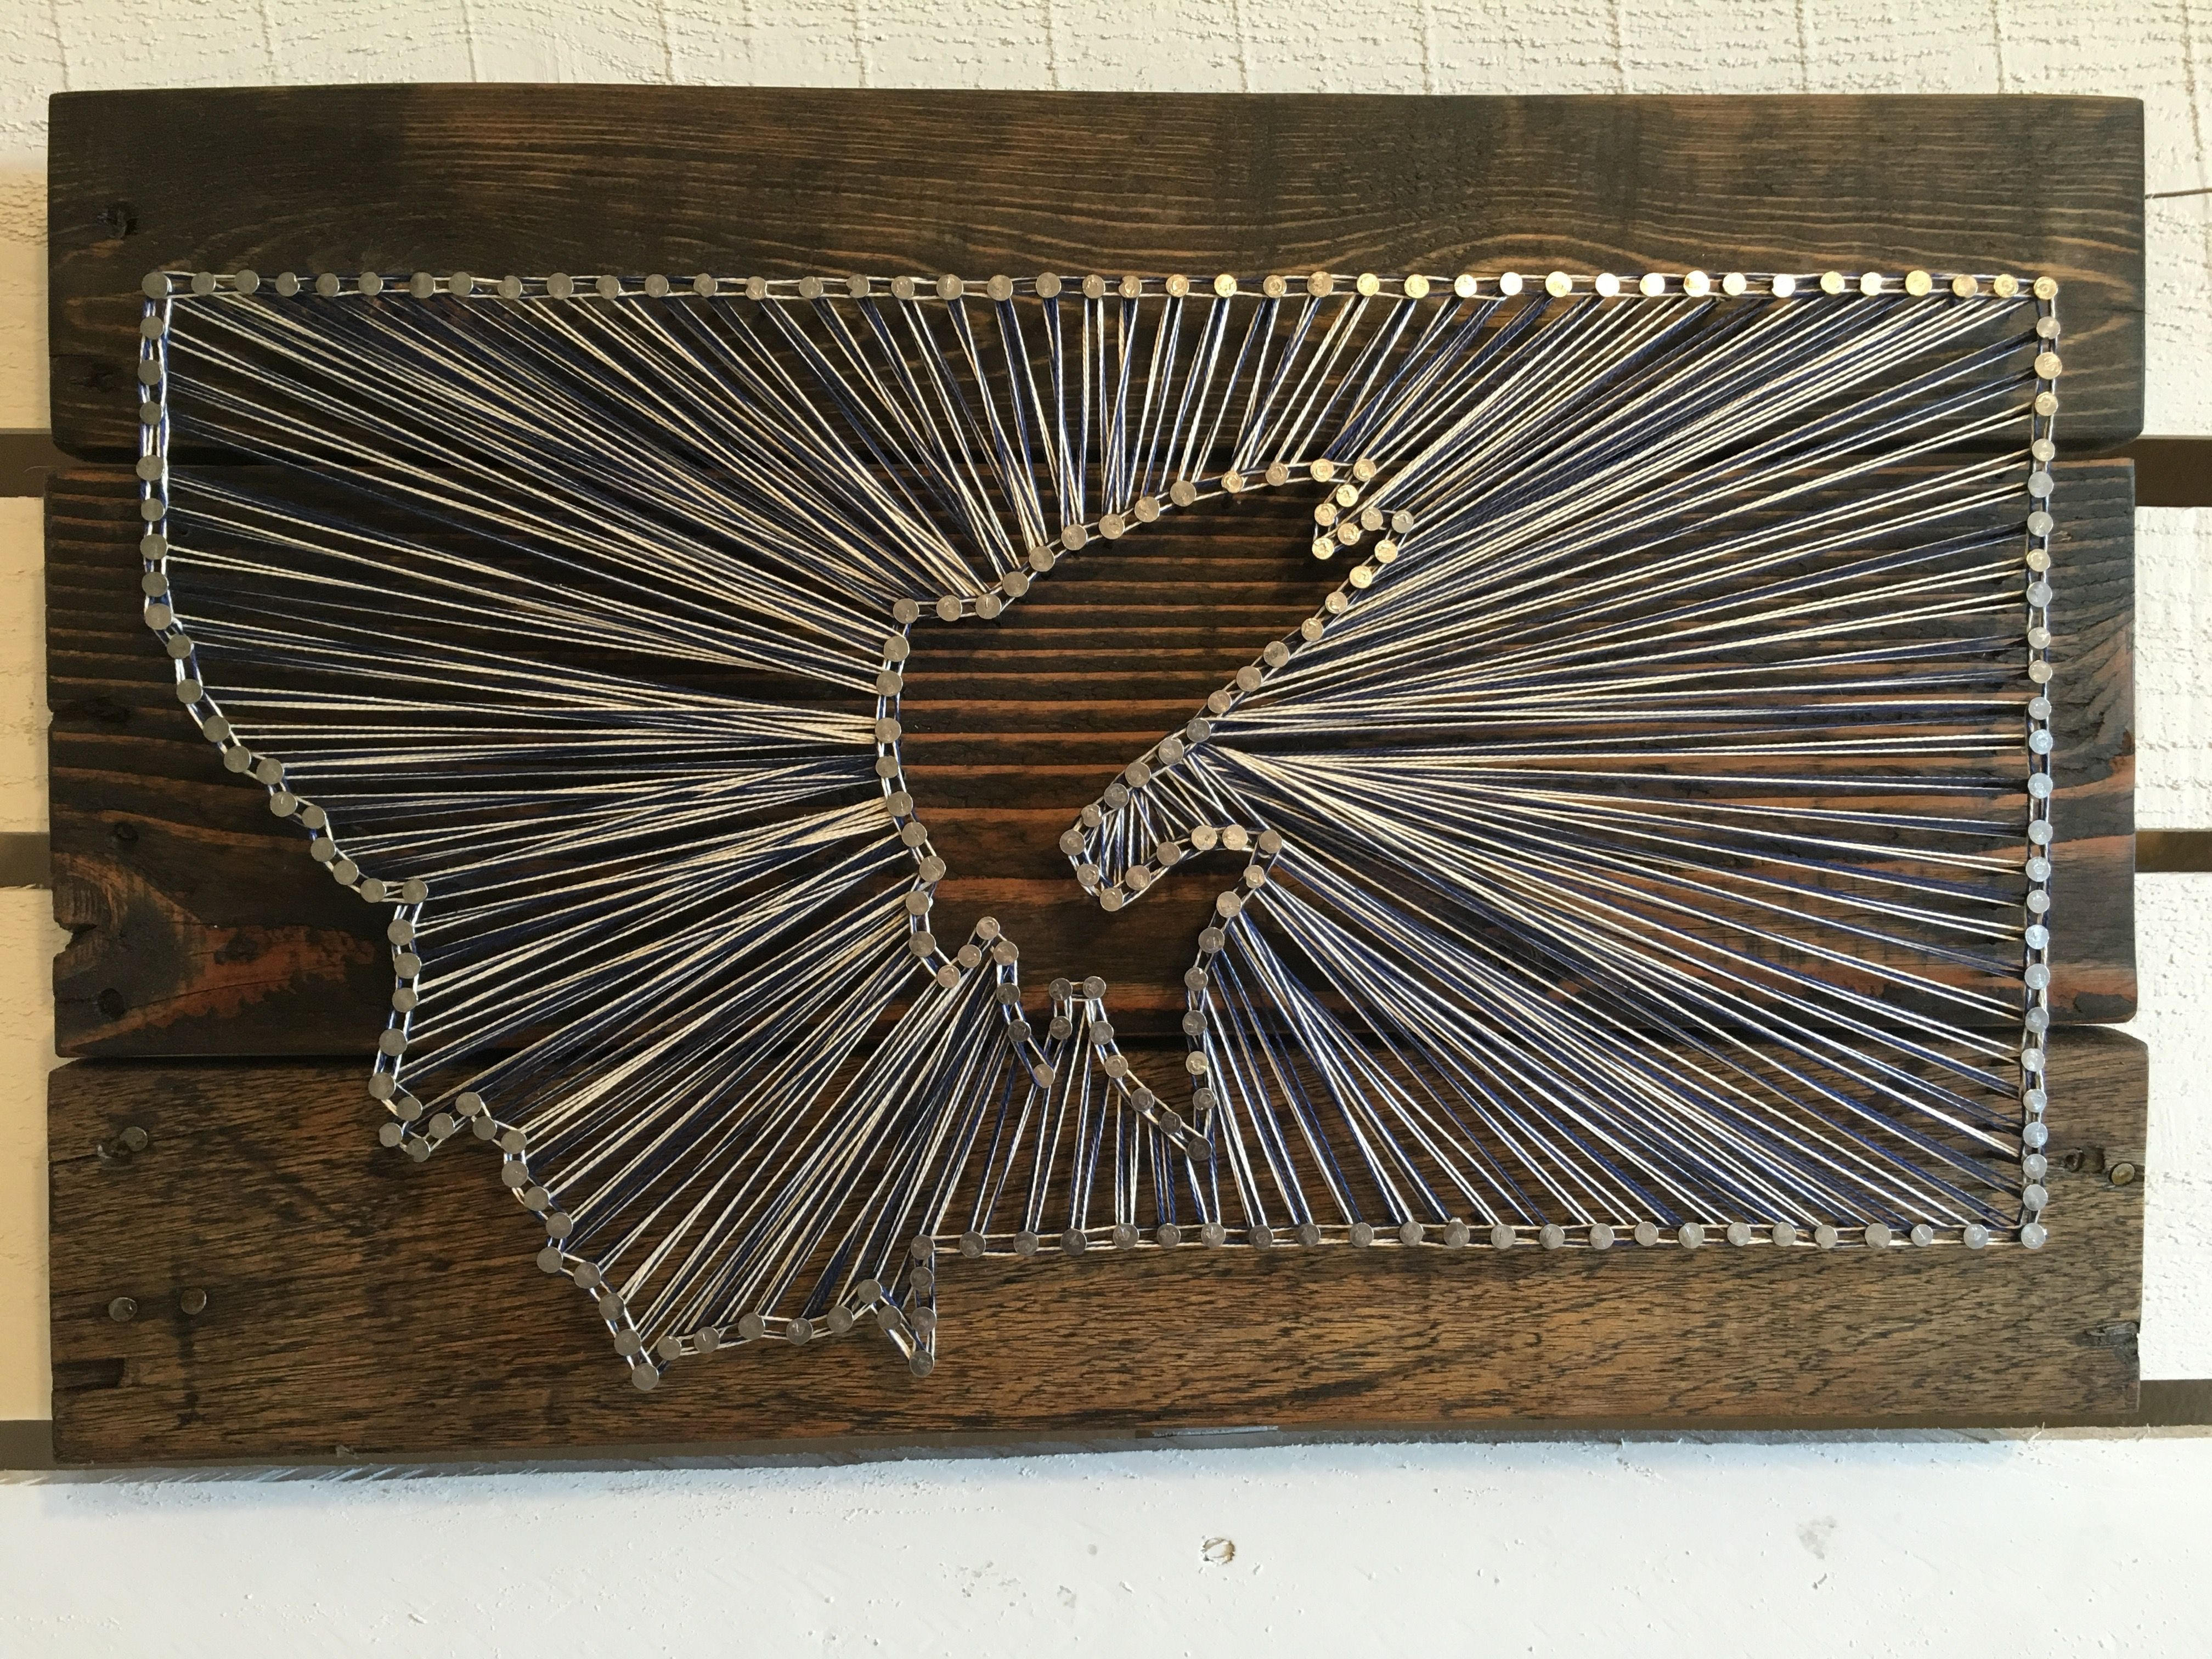 Montana fish string art pallet wood dark stain navy and for Fish string art